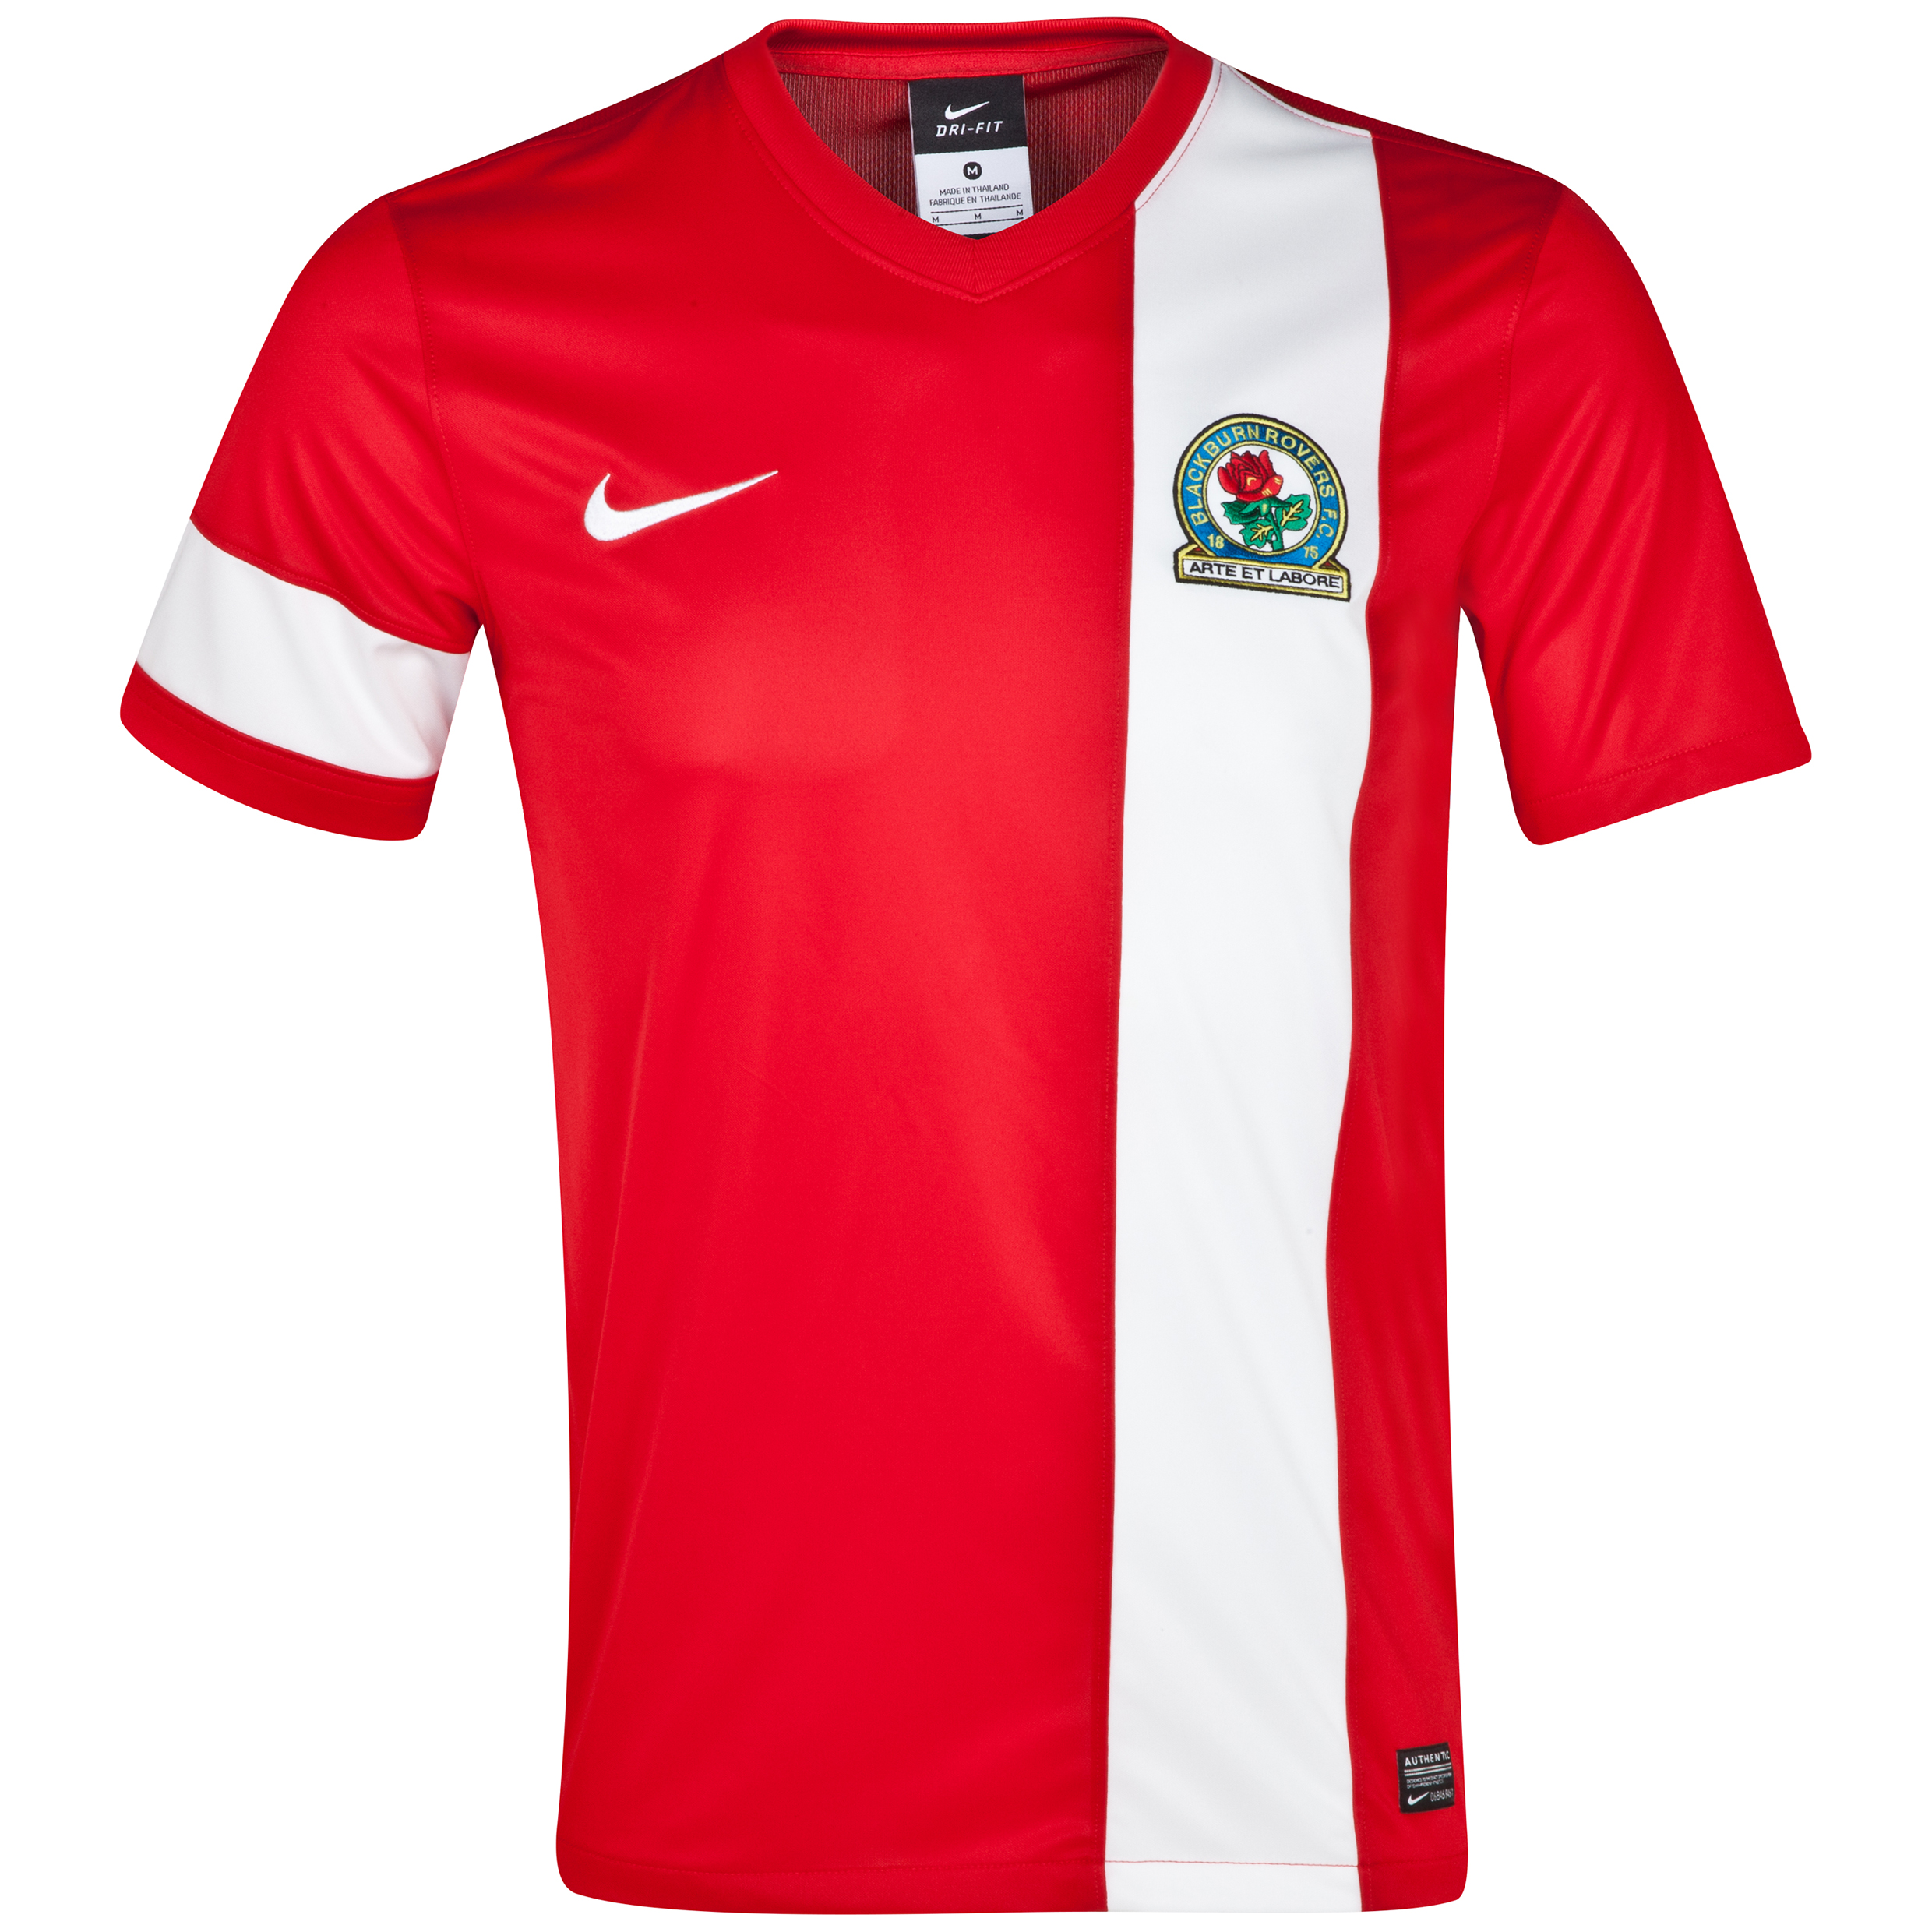 Blackburn Rovers Away Shirt 2013/14